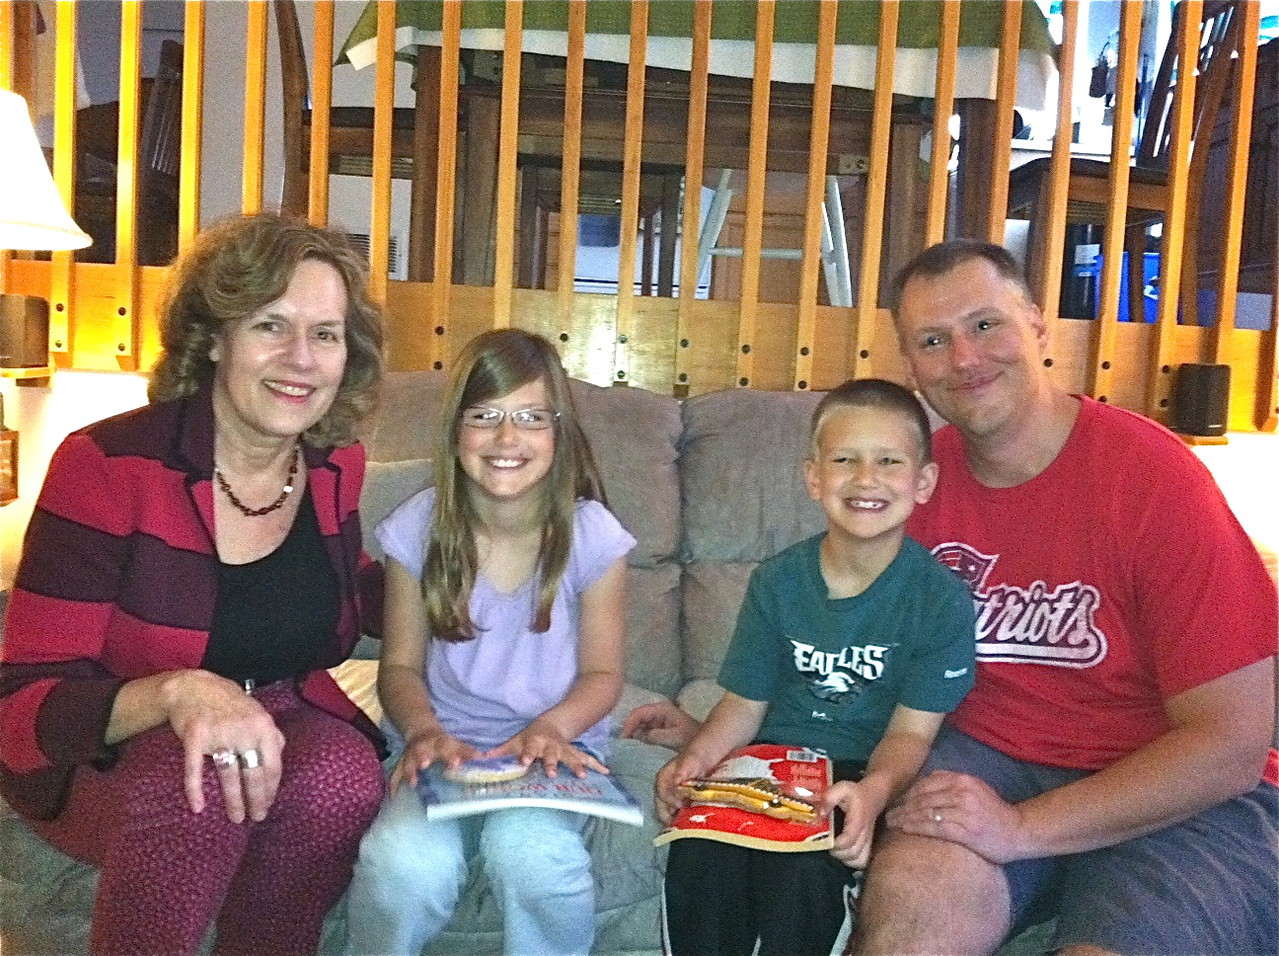 Lorraine, Reagen, 10, Braden, 6, and Jim McCann, May 11, 2013 Colorado